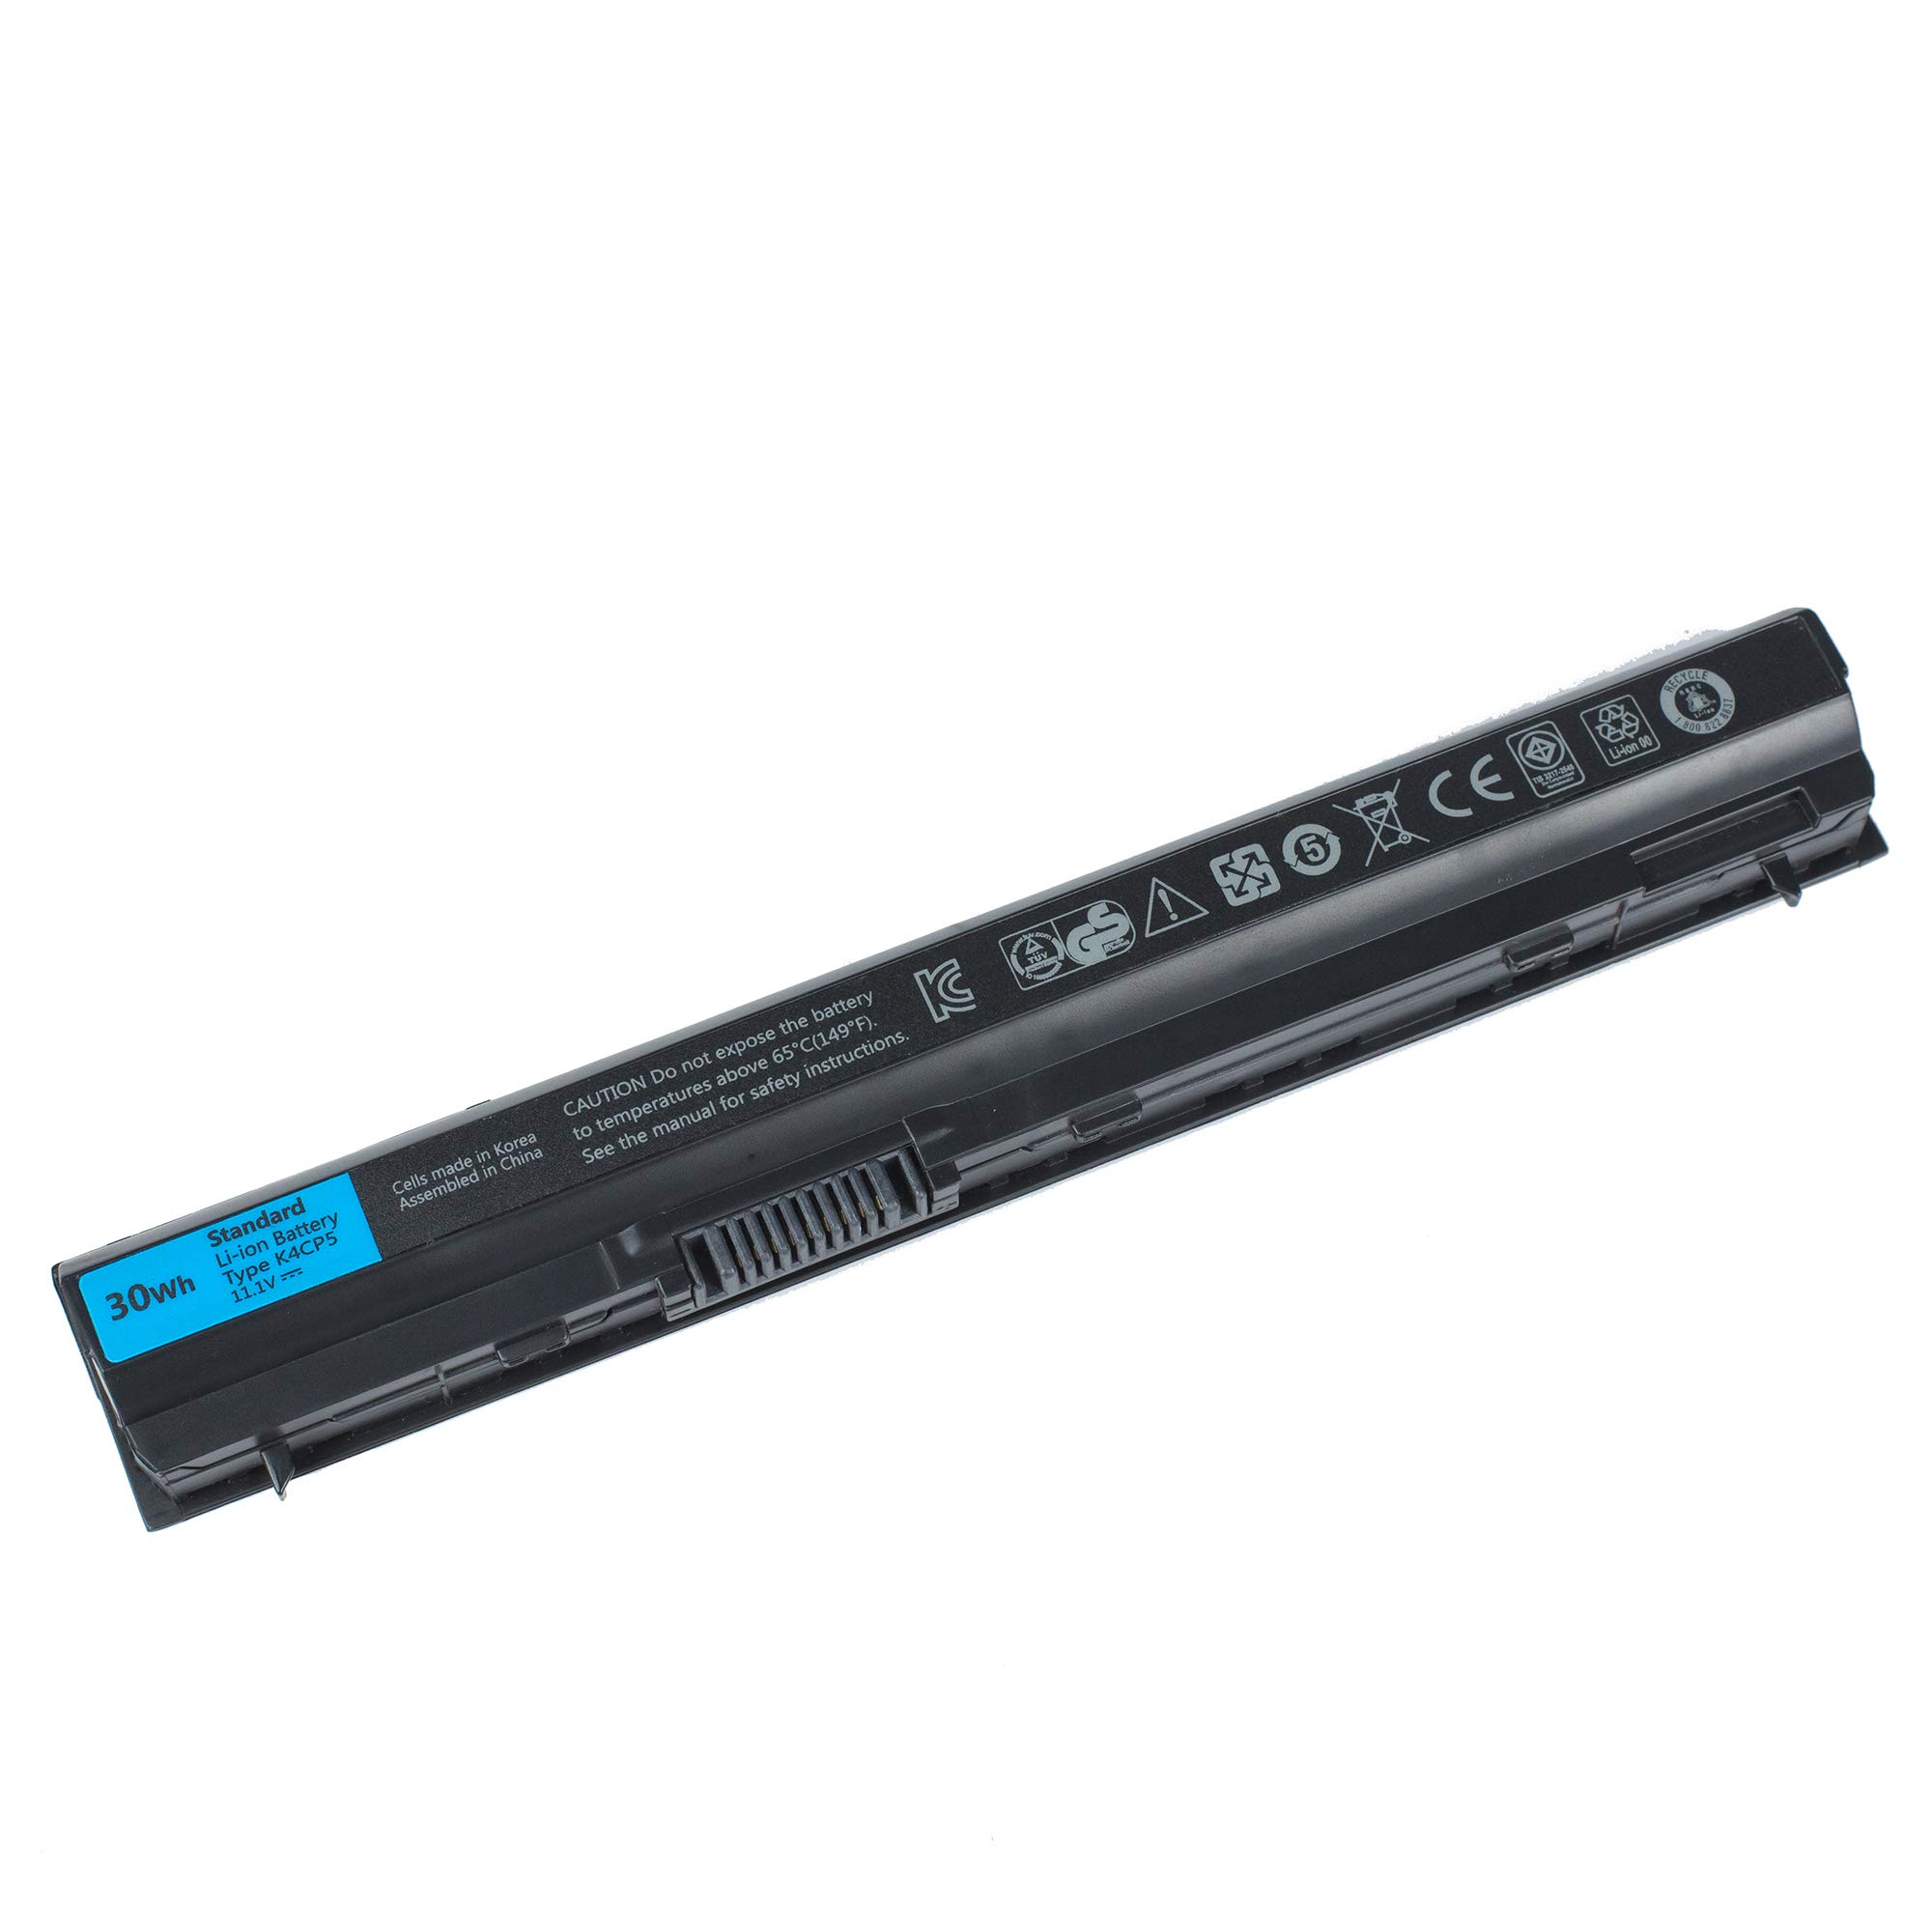 AC Doctor INC Laptop Battery for for Dell Latitude E6420 E6520 E6530 E5420 E5520 E5430 E5530 2P2MJ T54FJ 12-1325 312-1165 M5Y0X PRV1Y E6420